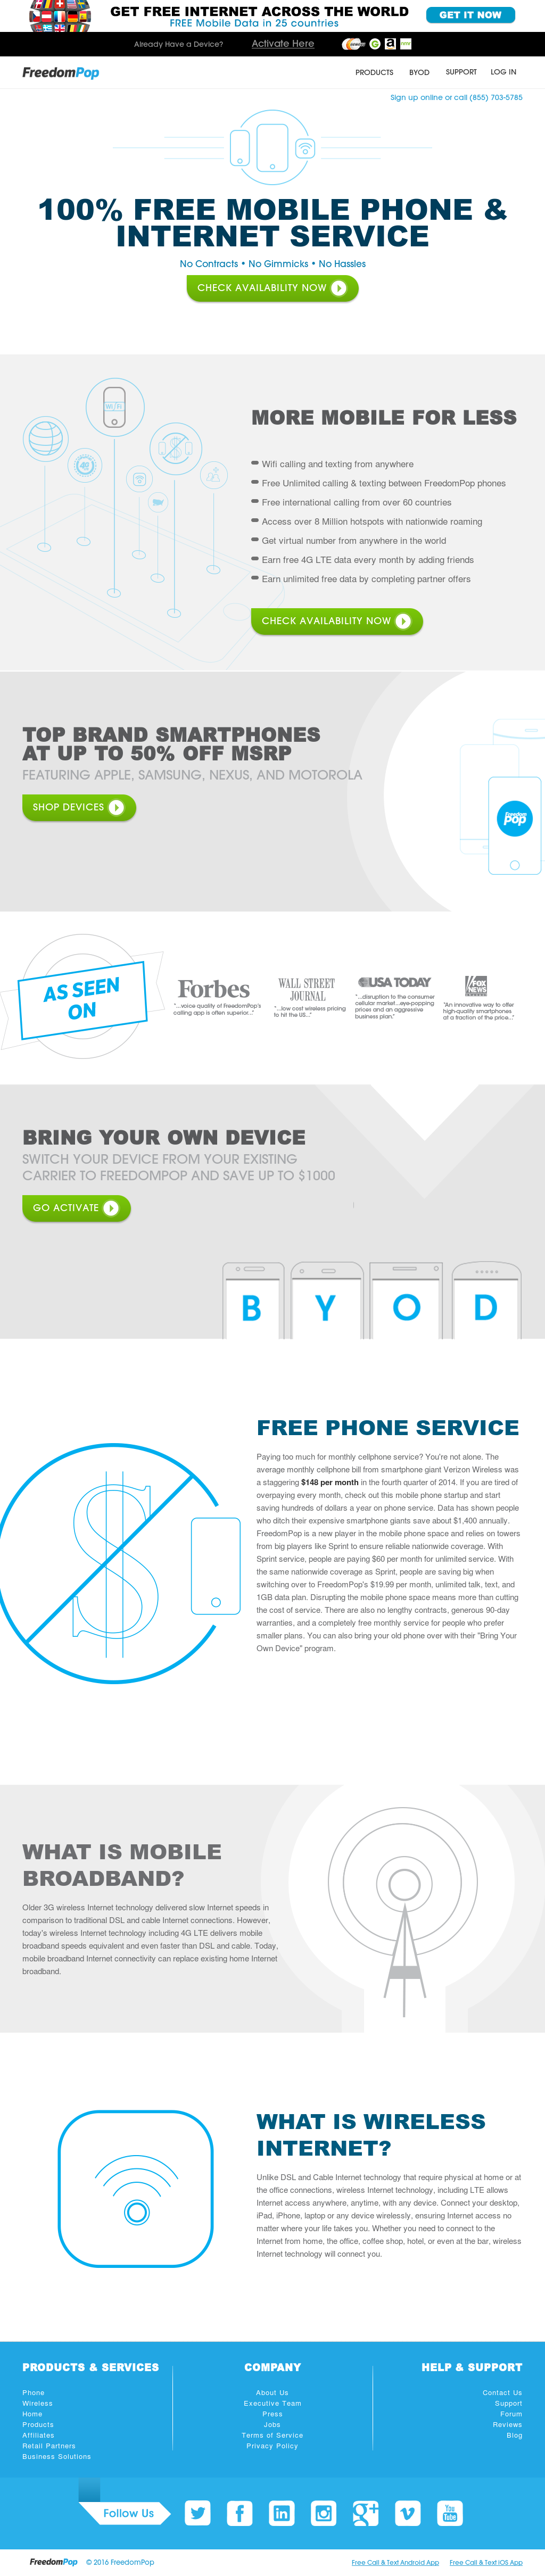 FreedomPop Competitors, Revenue and Employees - Owler